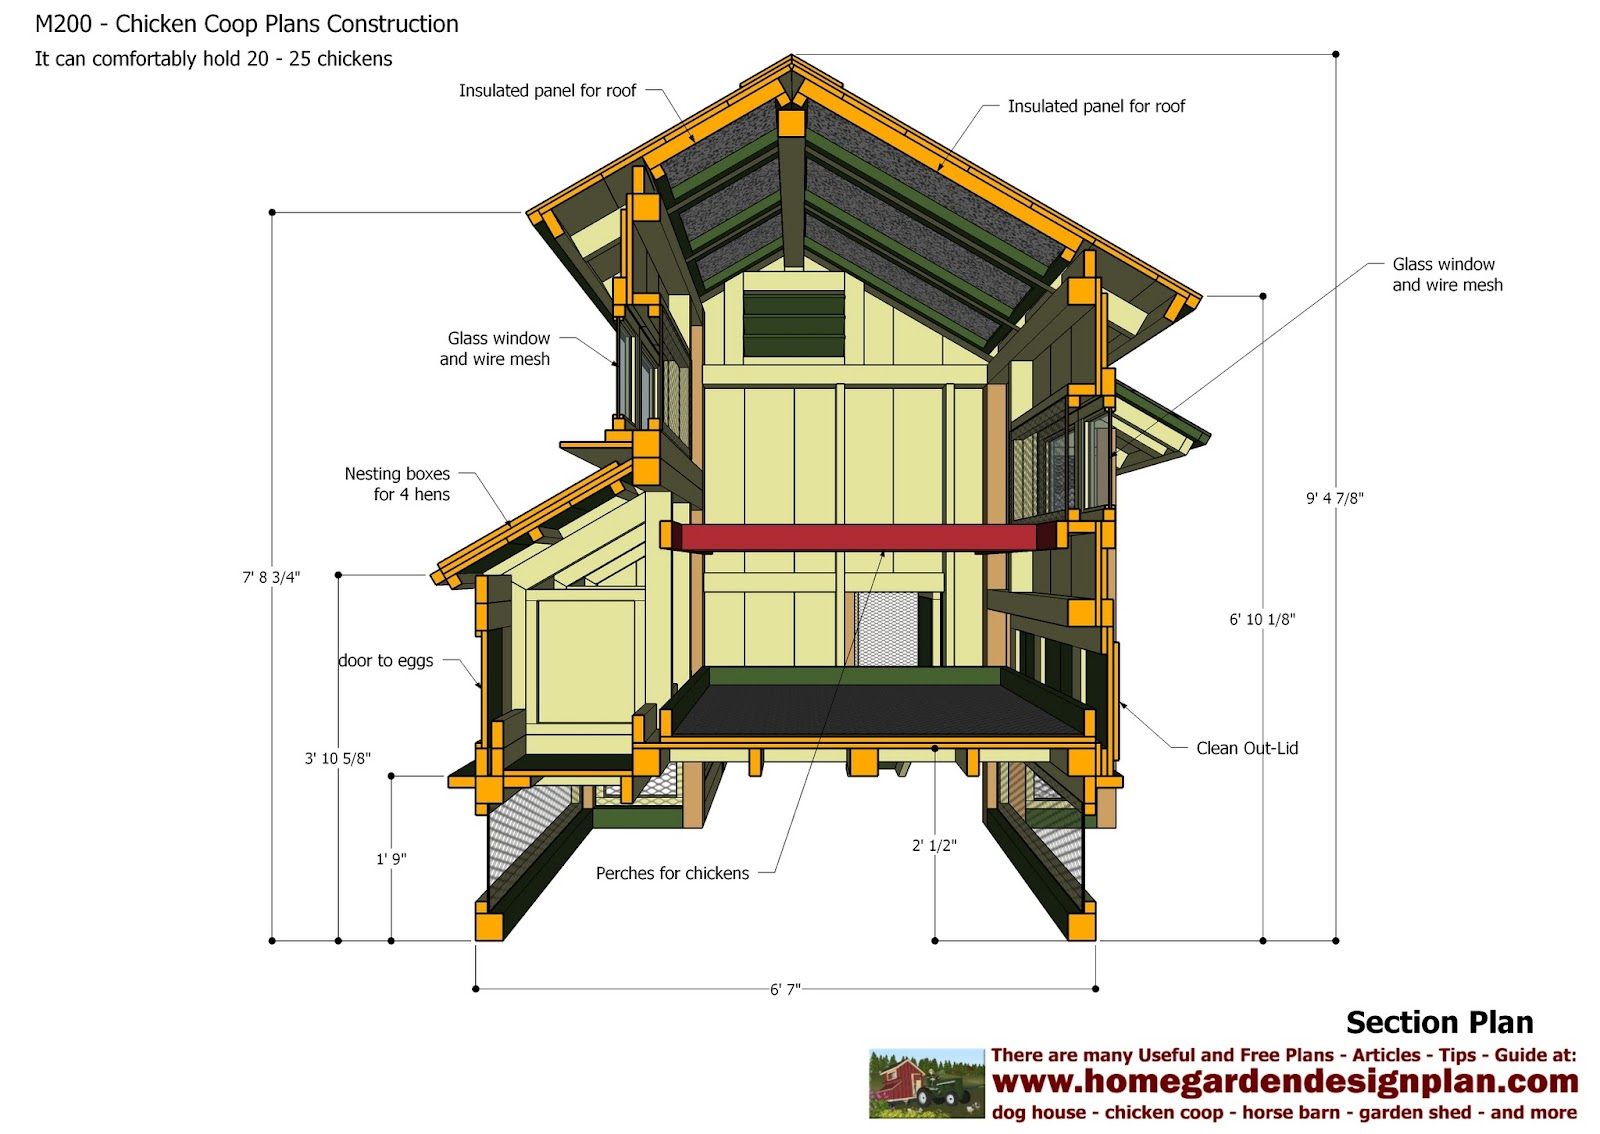 Diy chick coop chicken coop plans drawings for Plans chicken coop